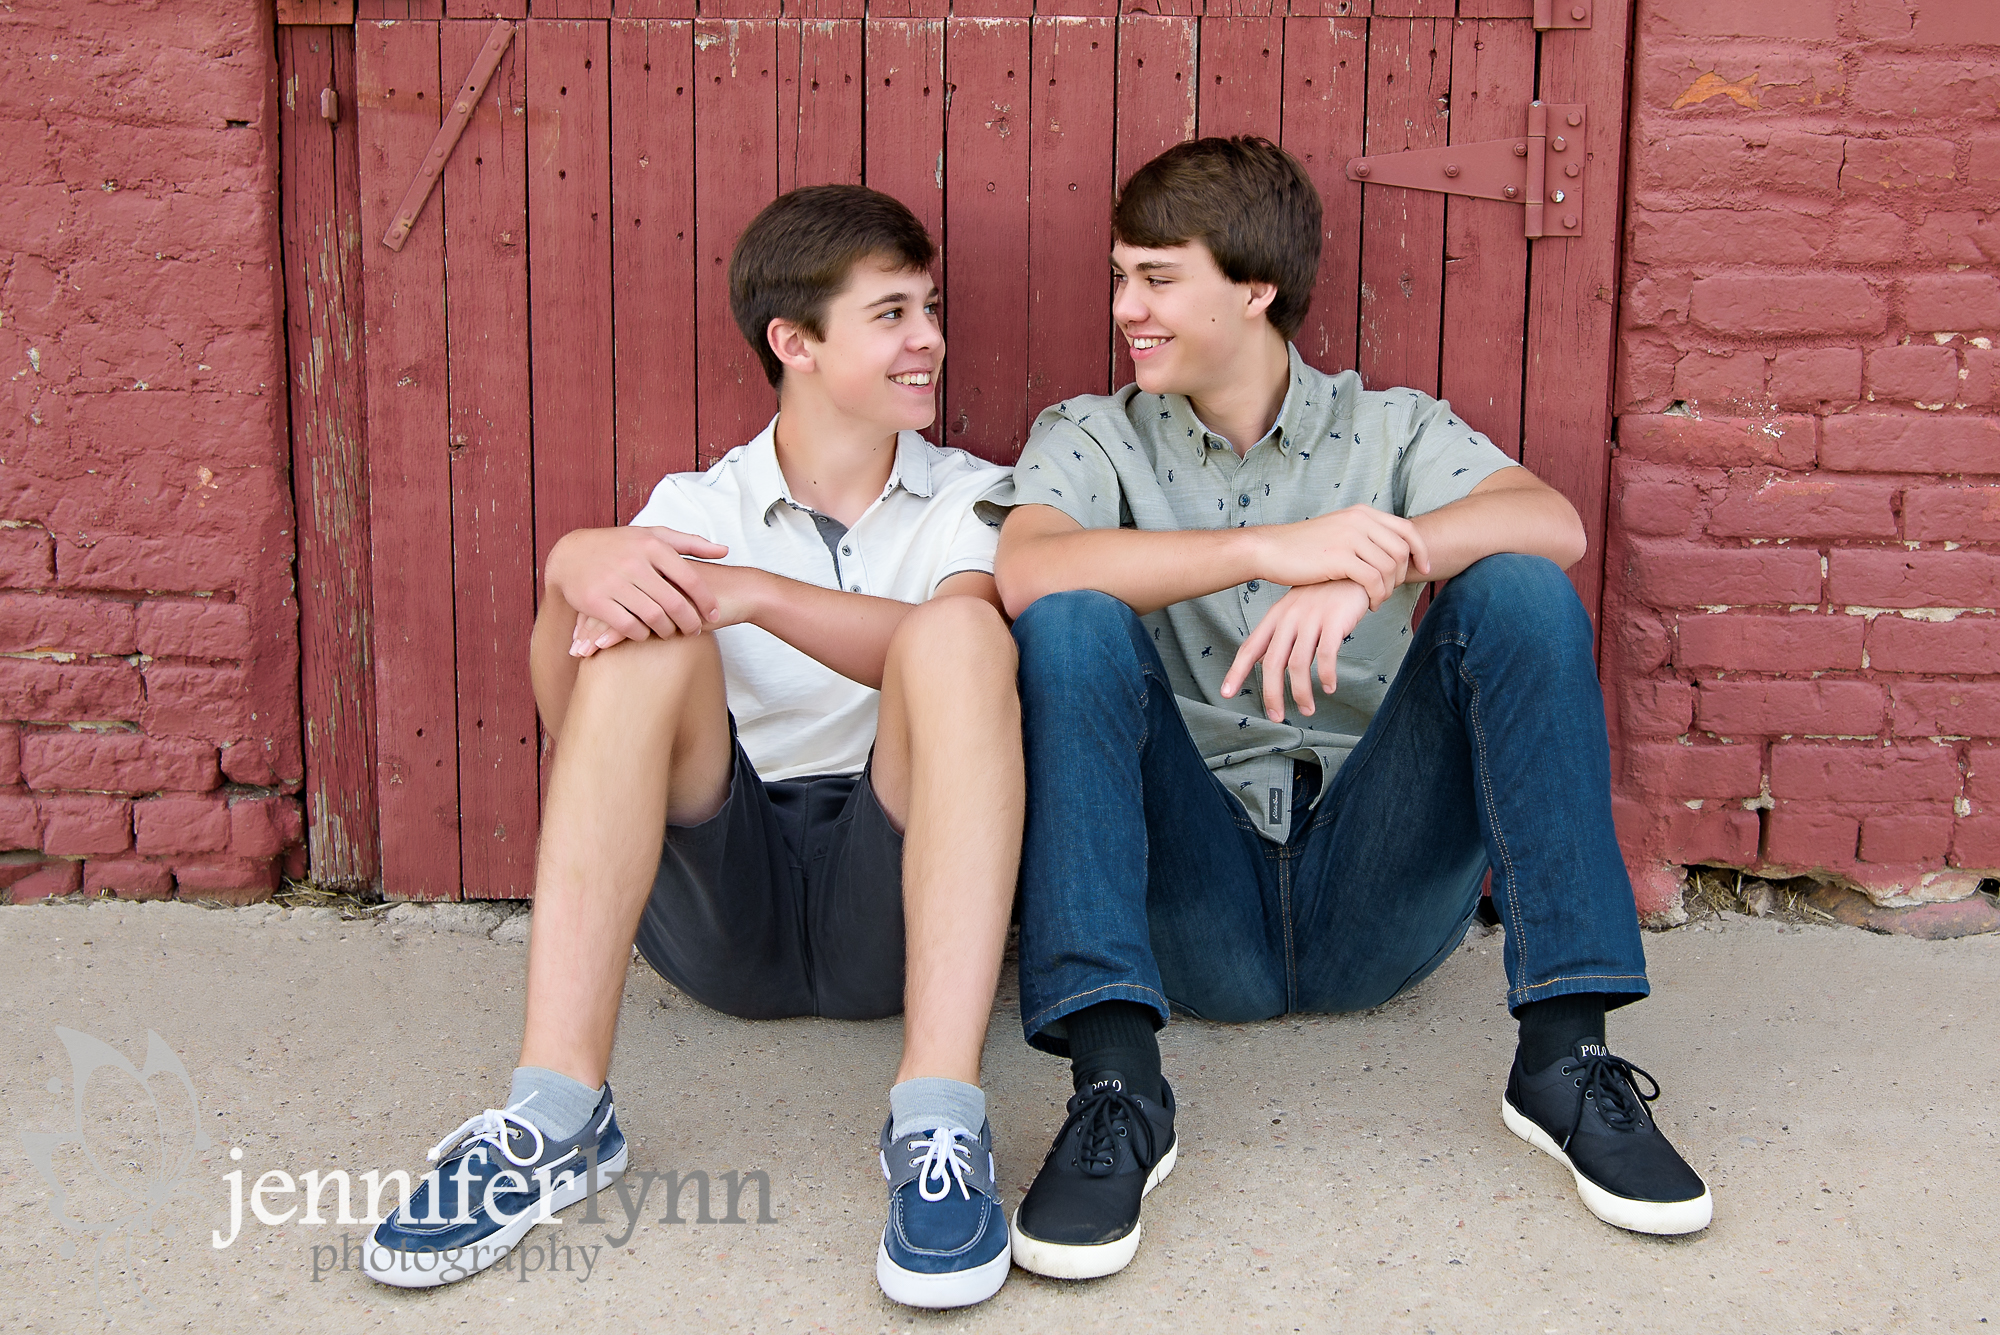 Two Brothers at a Rustic Red Barn